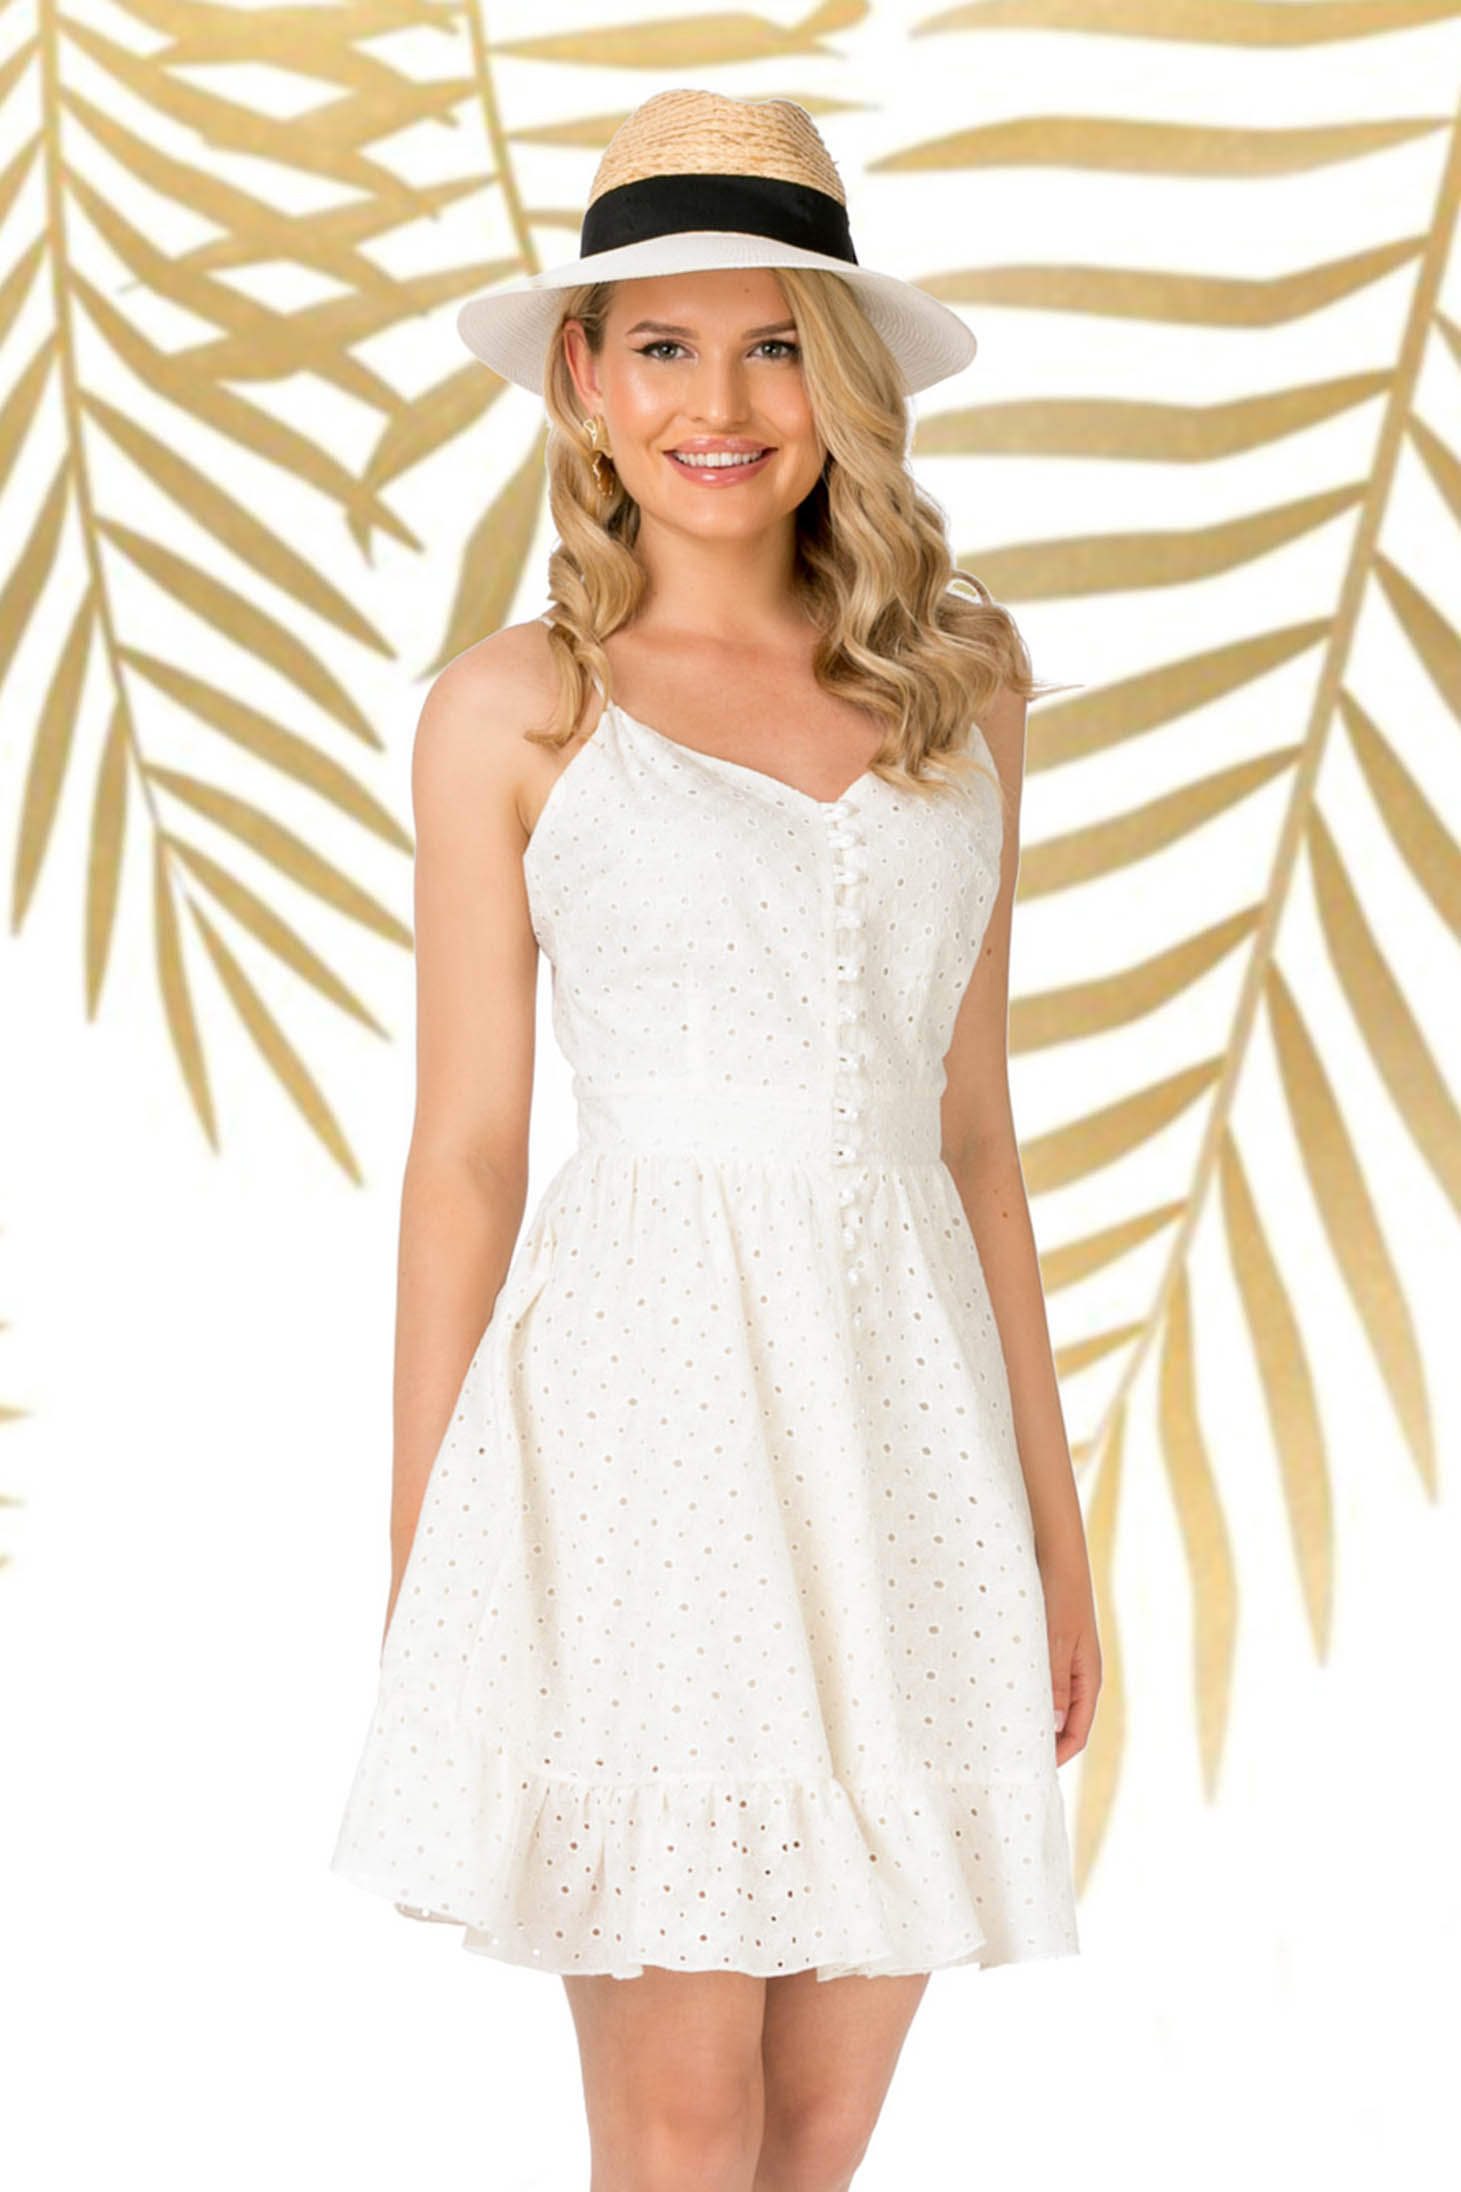 White dress daily cloche with braces nonelastic cotton with ruffles at the buttom of the dress